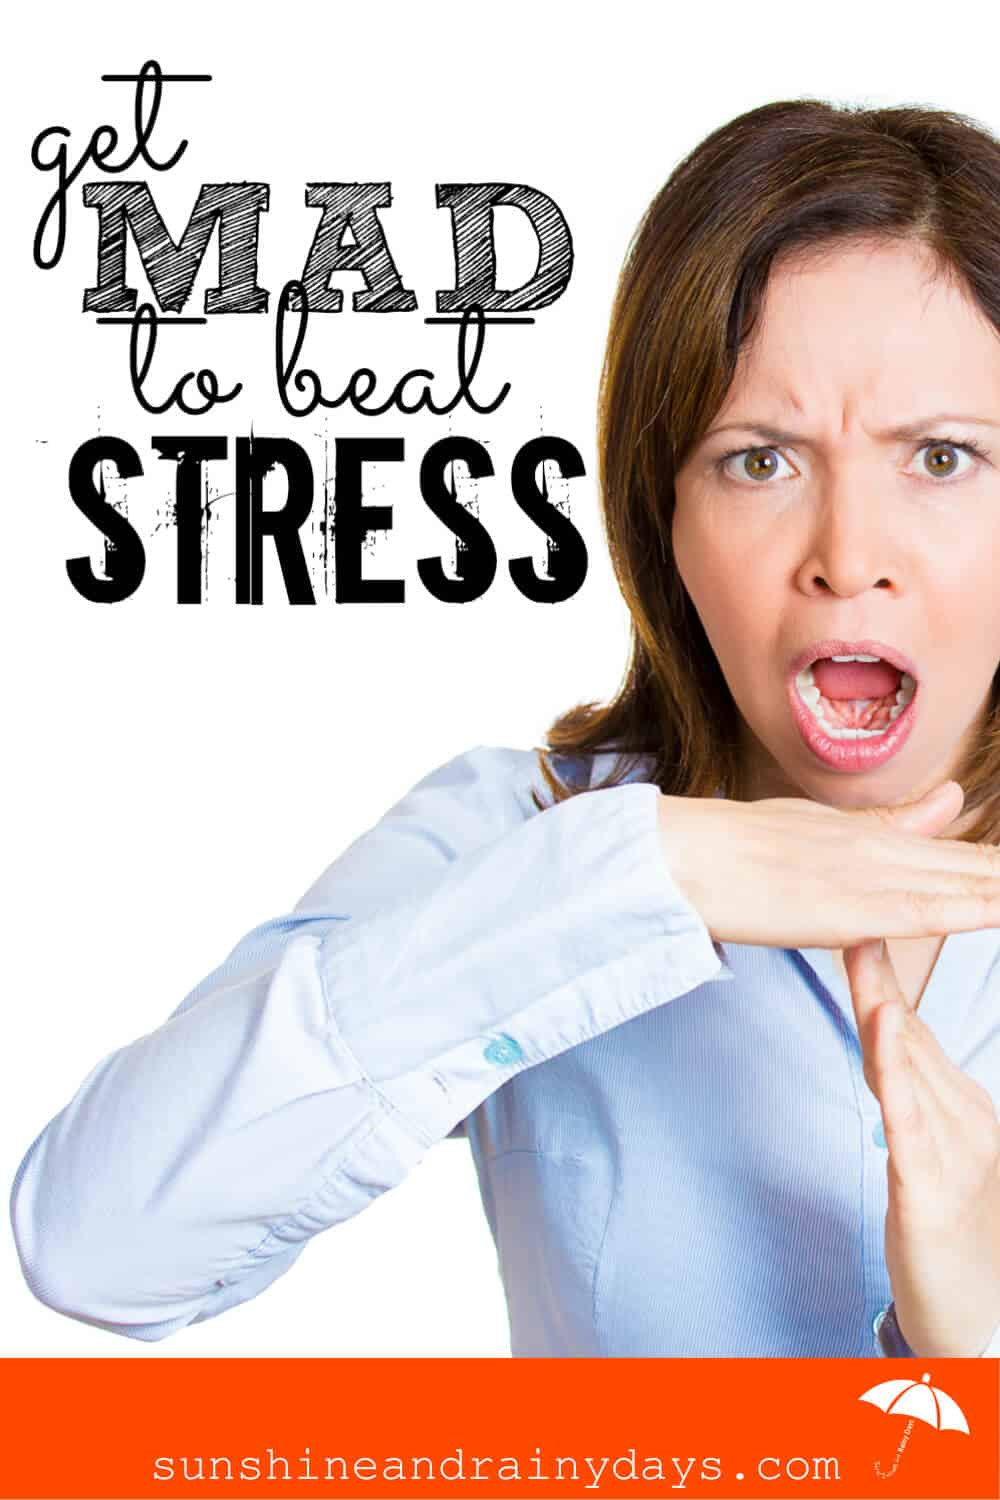 How many conflicting things have you heard lately? Has decision making come to a halt while you sort through the mess of information?! It's time to Get Mad to Beat Stress!